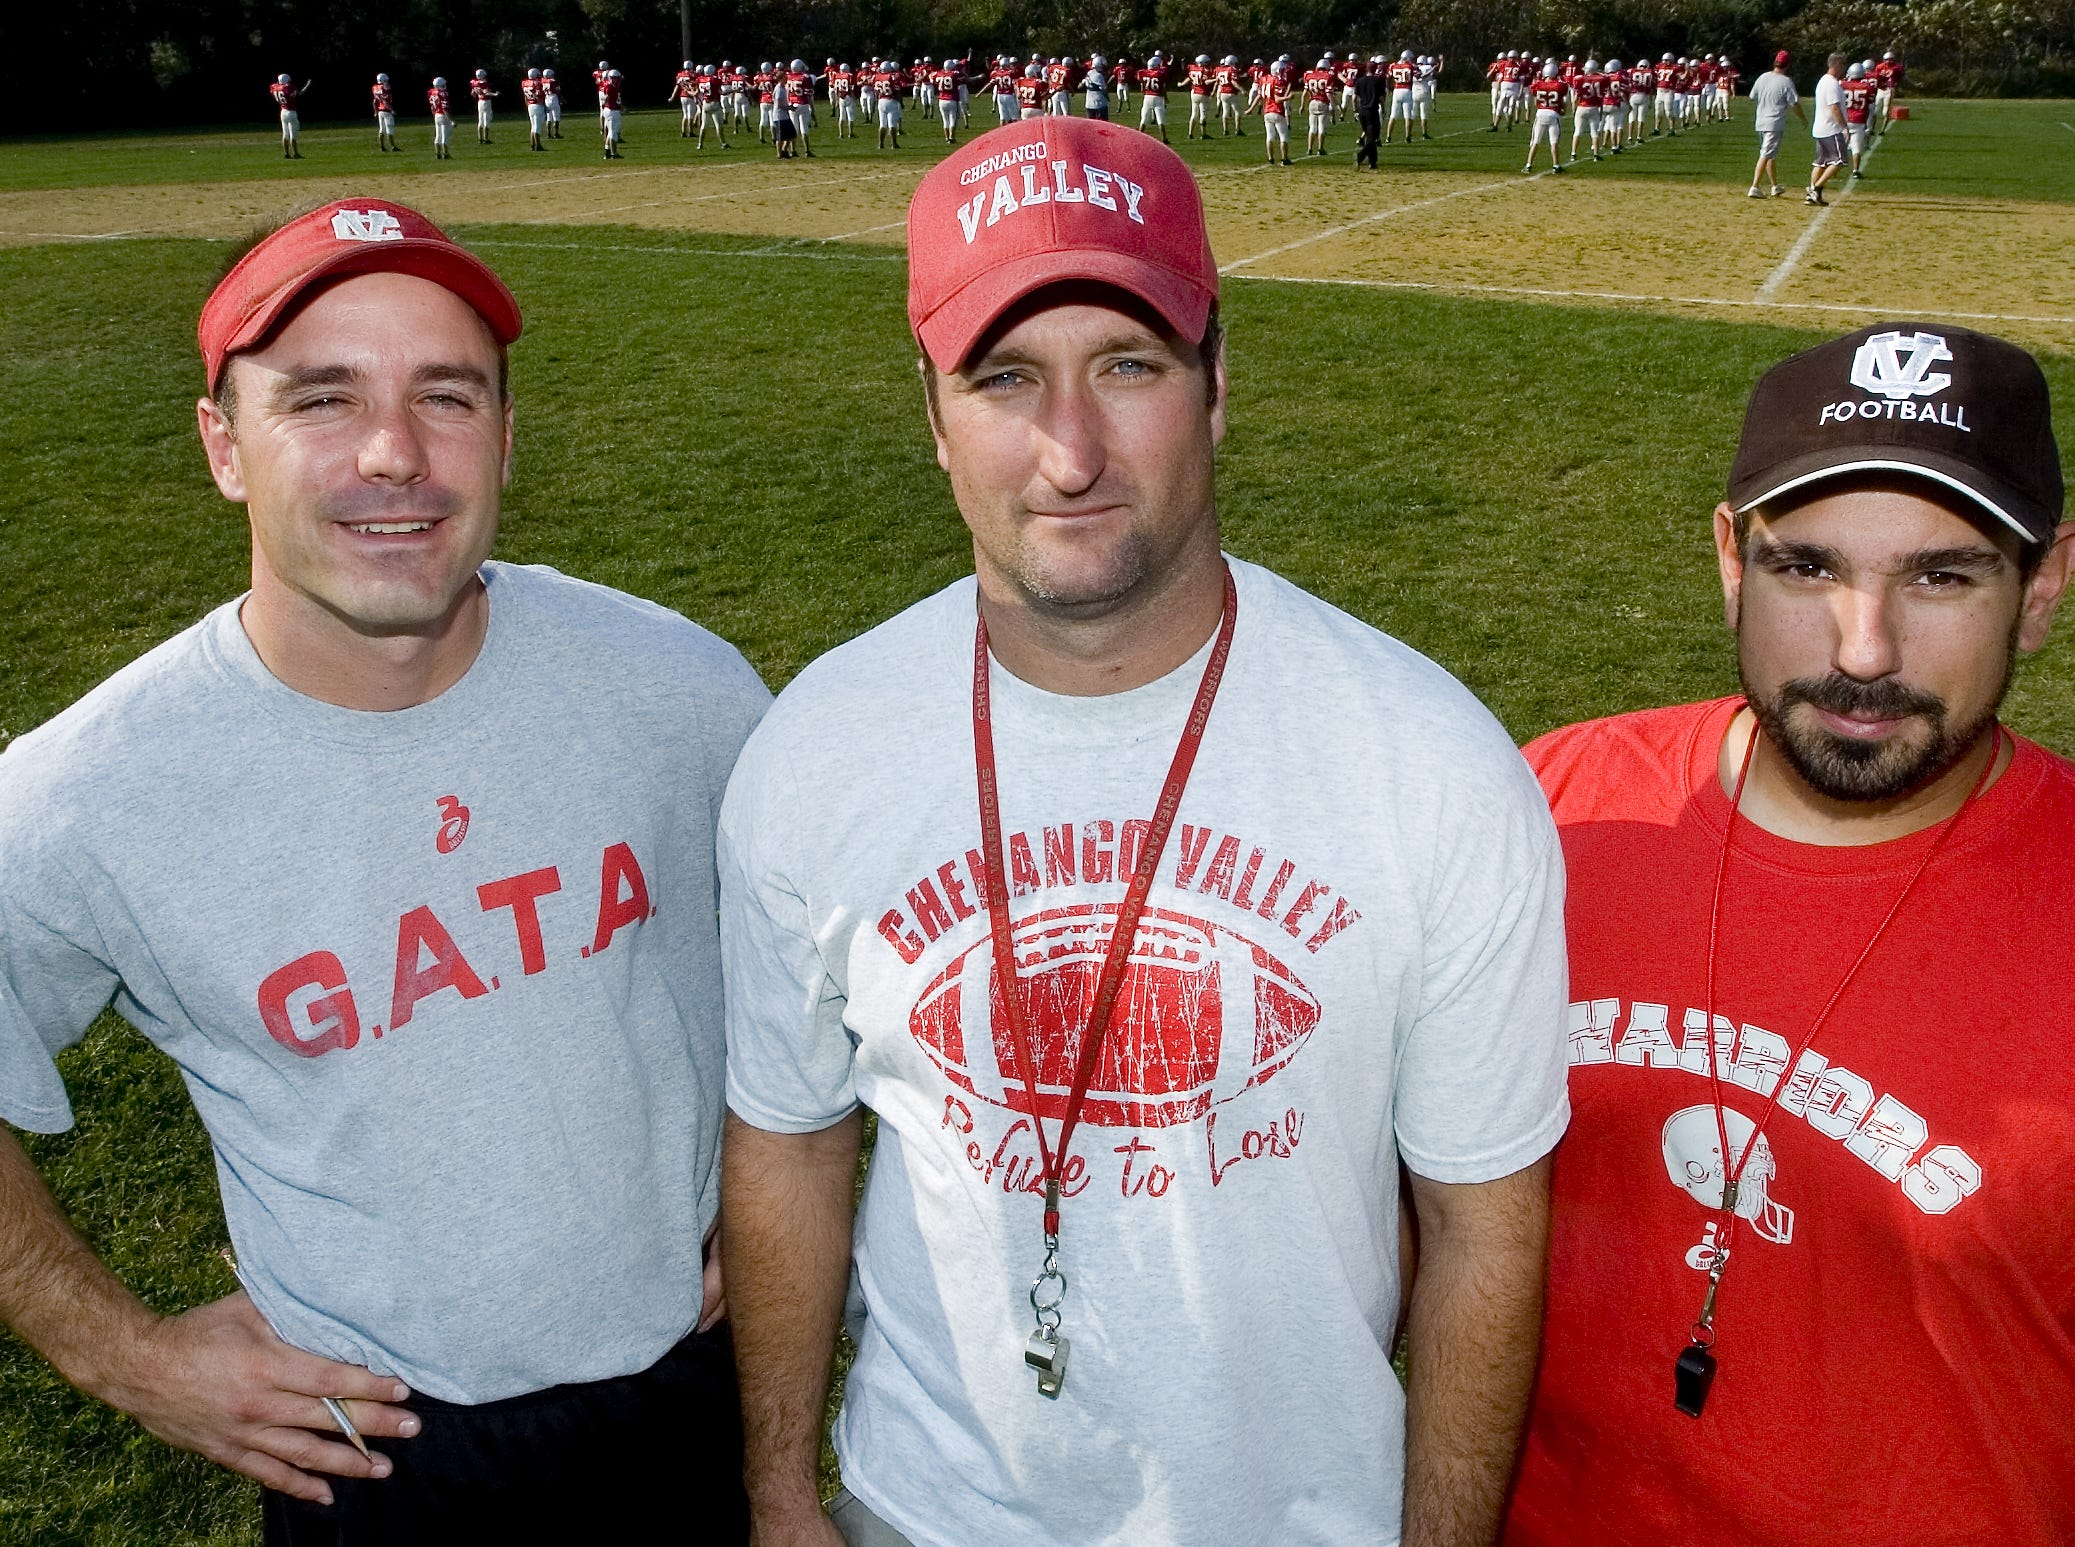 From 2007: Chenango Valley Football coaches, from left, Scott Kline, Jay Hope and Mike Turna were key players in the 1989 CV win over Chenango Forks.